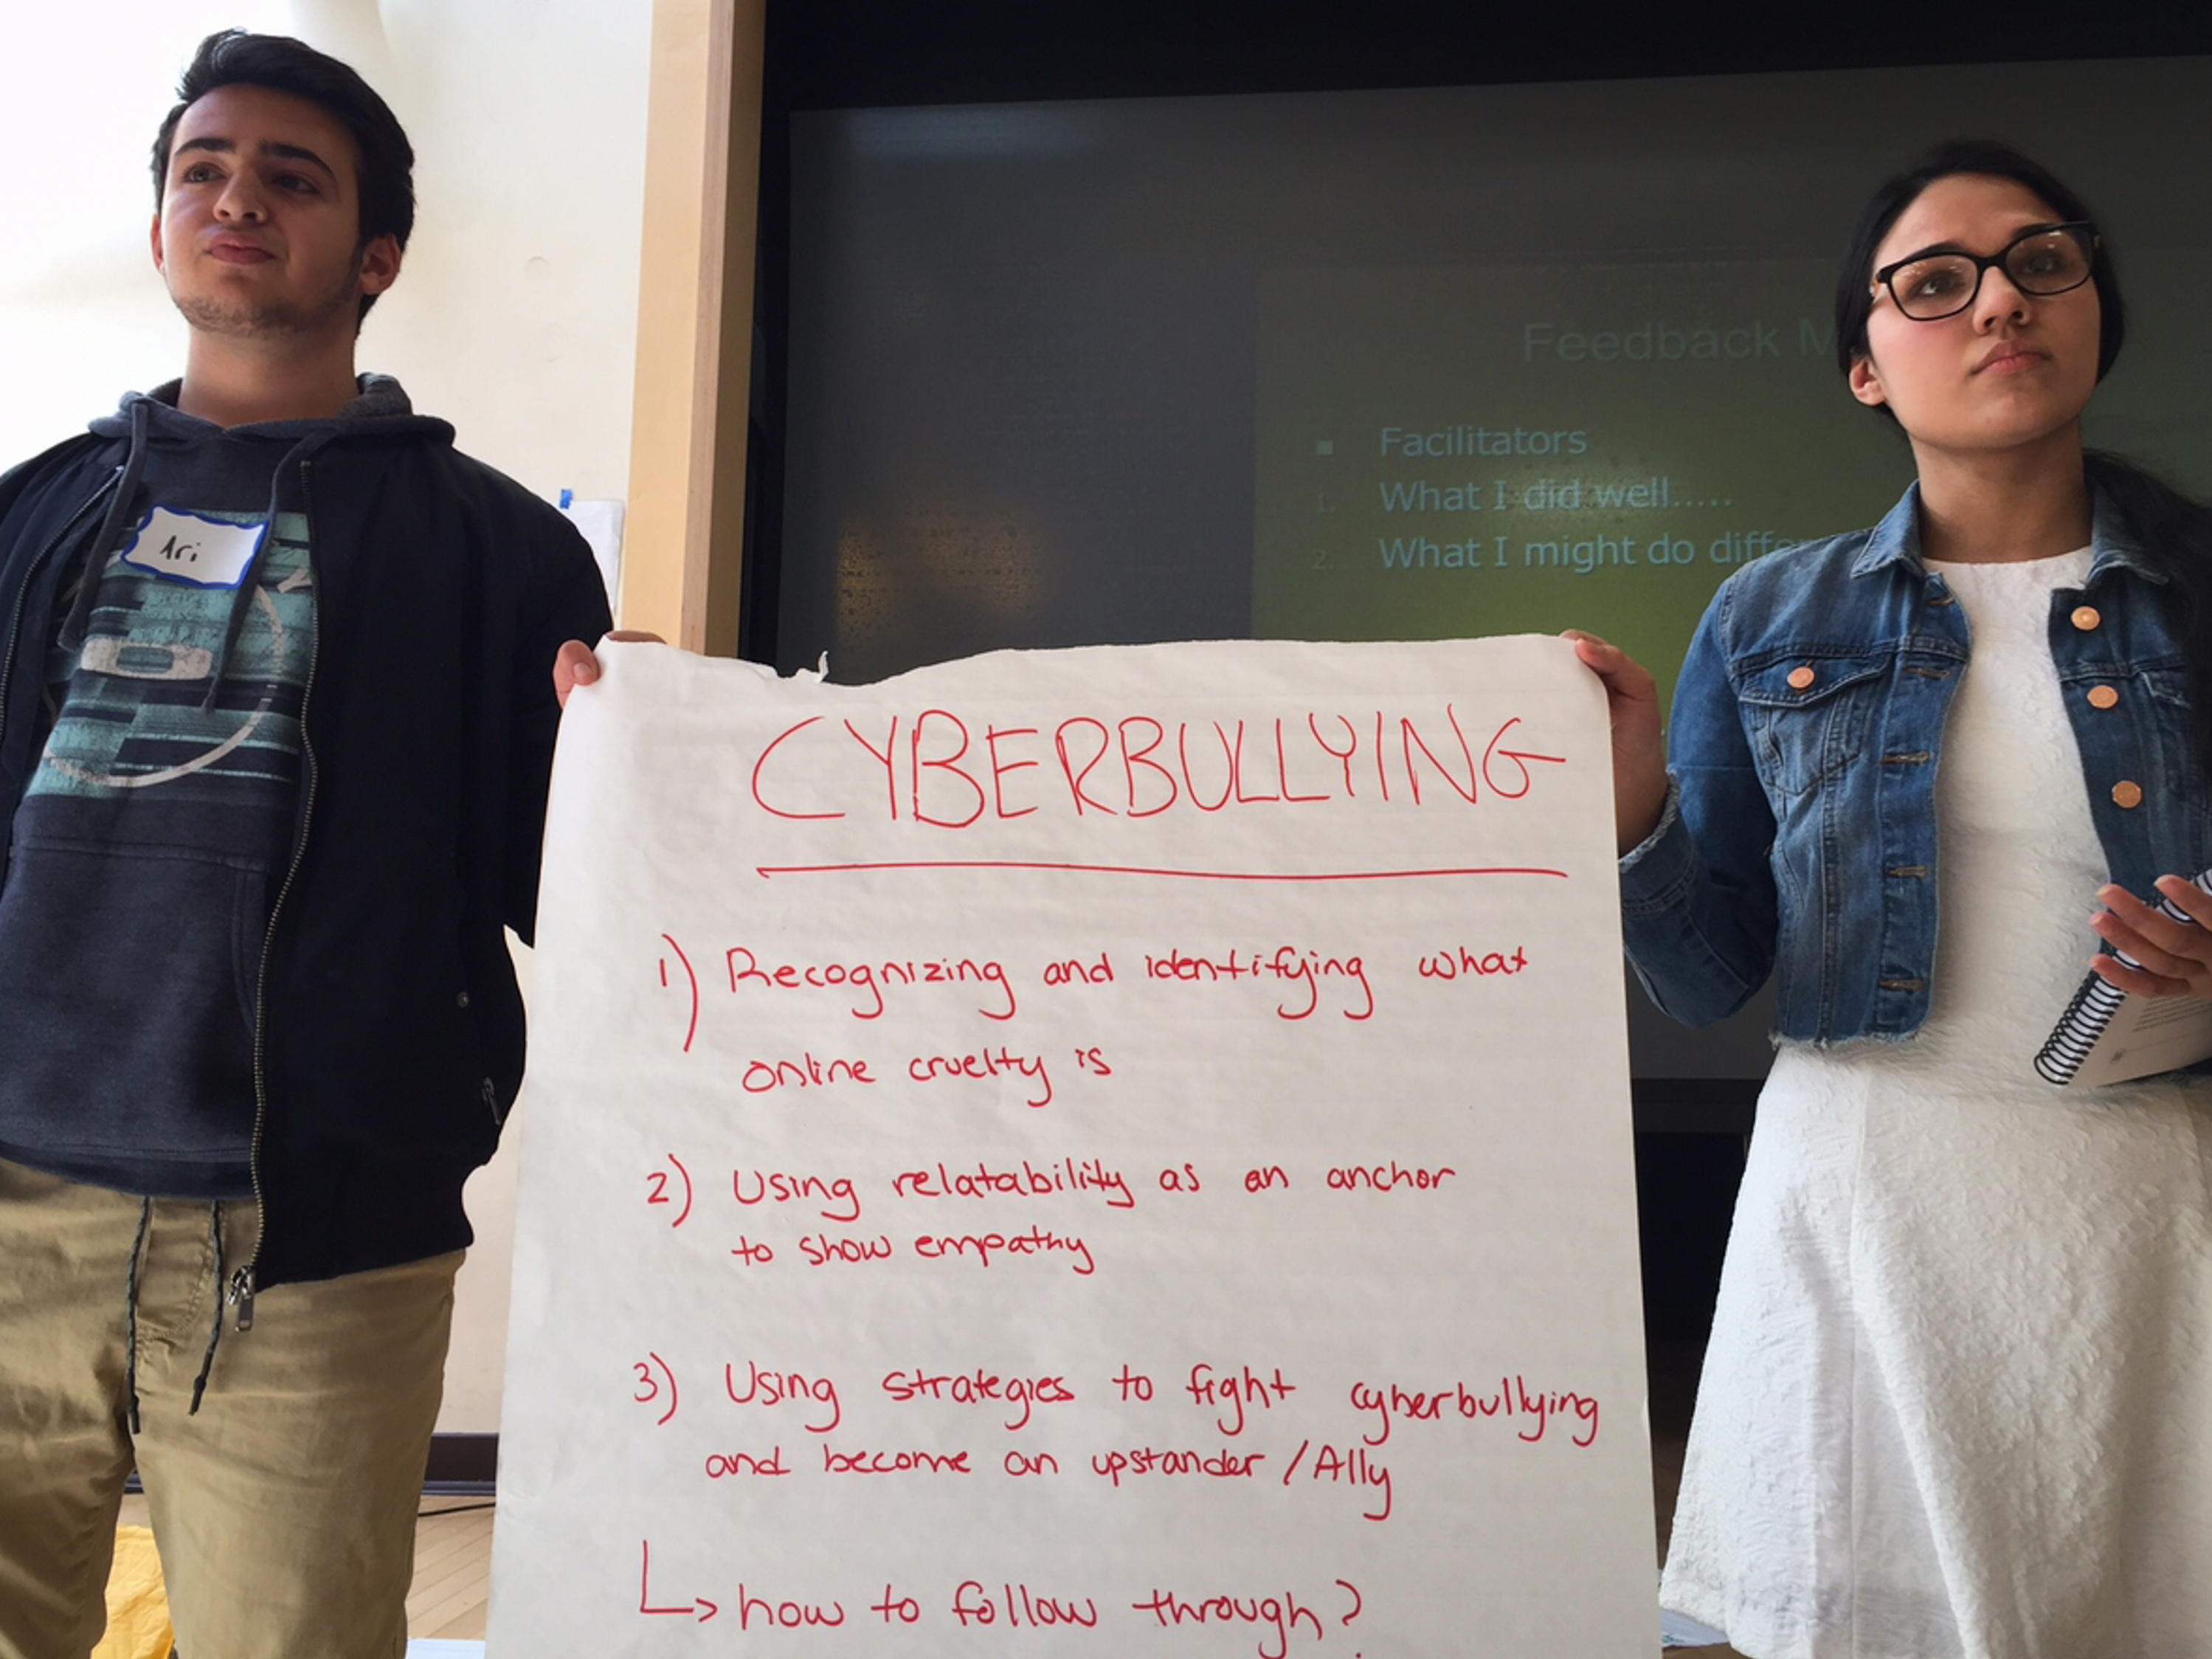 Brookline High School students Ari Lazowski (left) and Iman Khan practice presenting an exercise on cyberbullying.     (Tovia Smith/NPR)